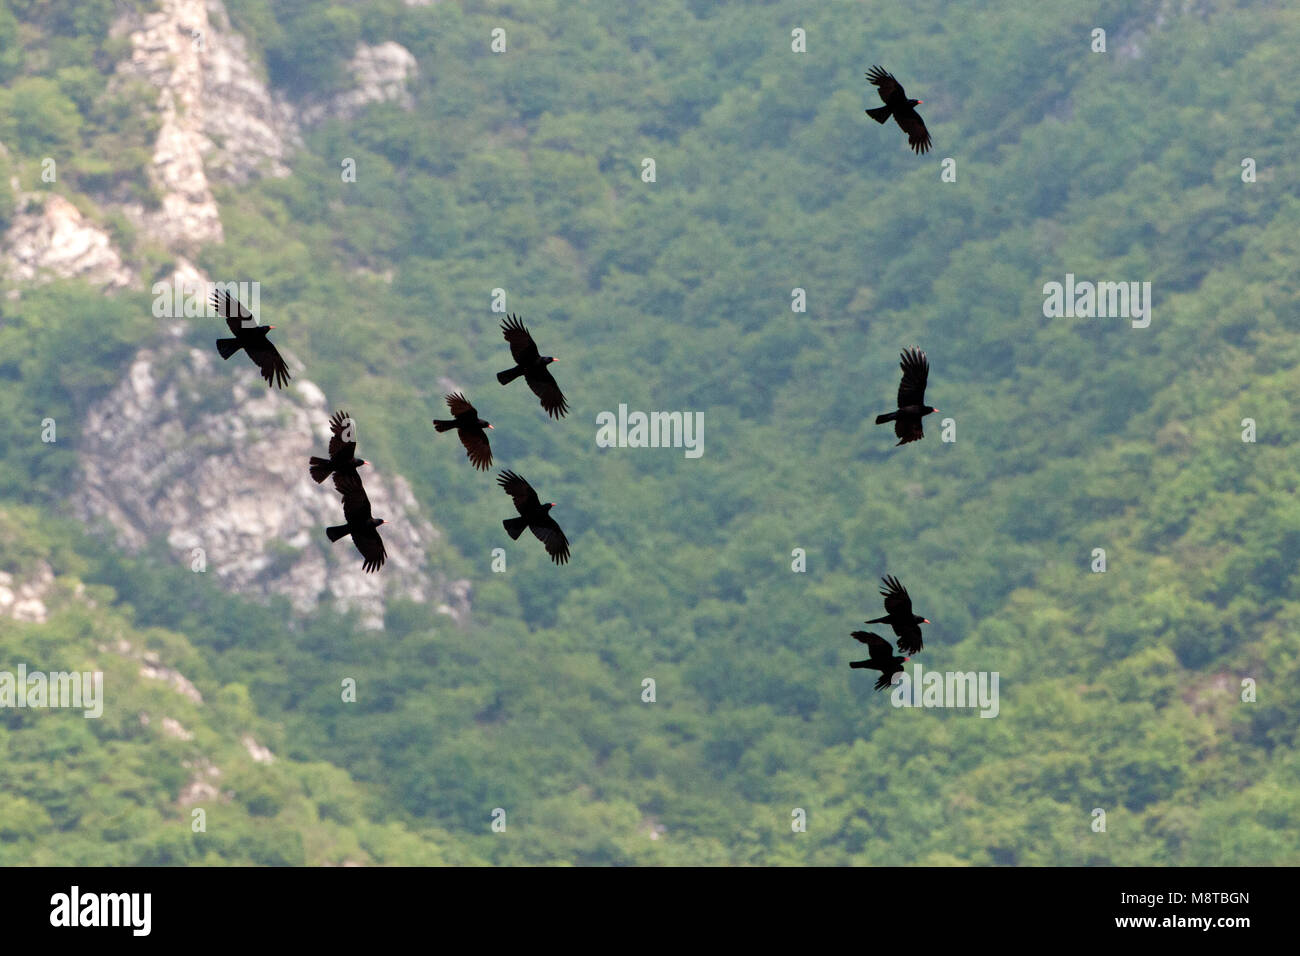 Groep Alpenkraaien vliegend door een dal; Group of Alpine Choughs flying through a valley - Stock Image